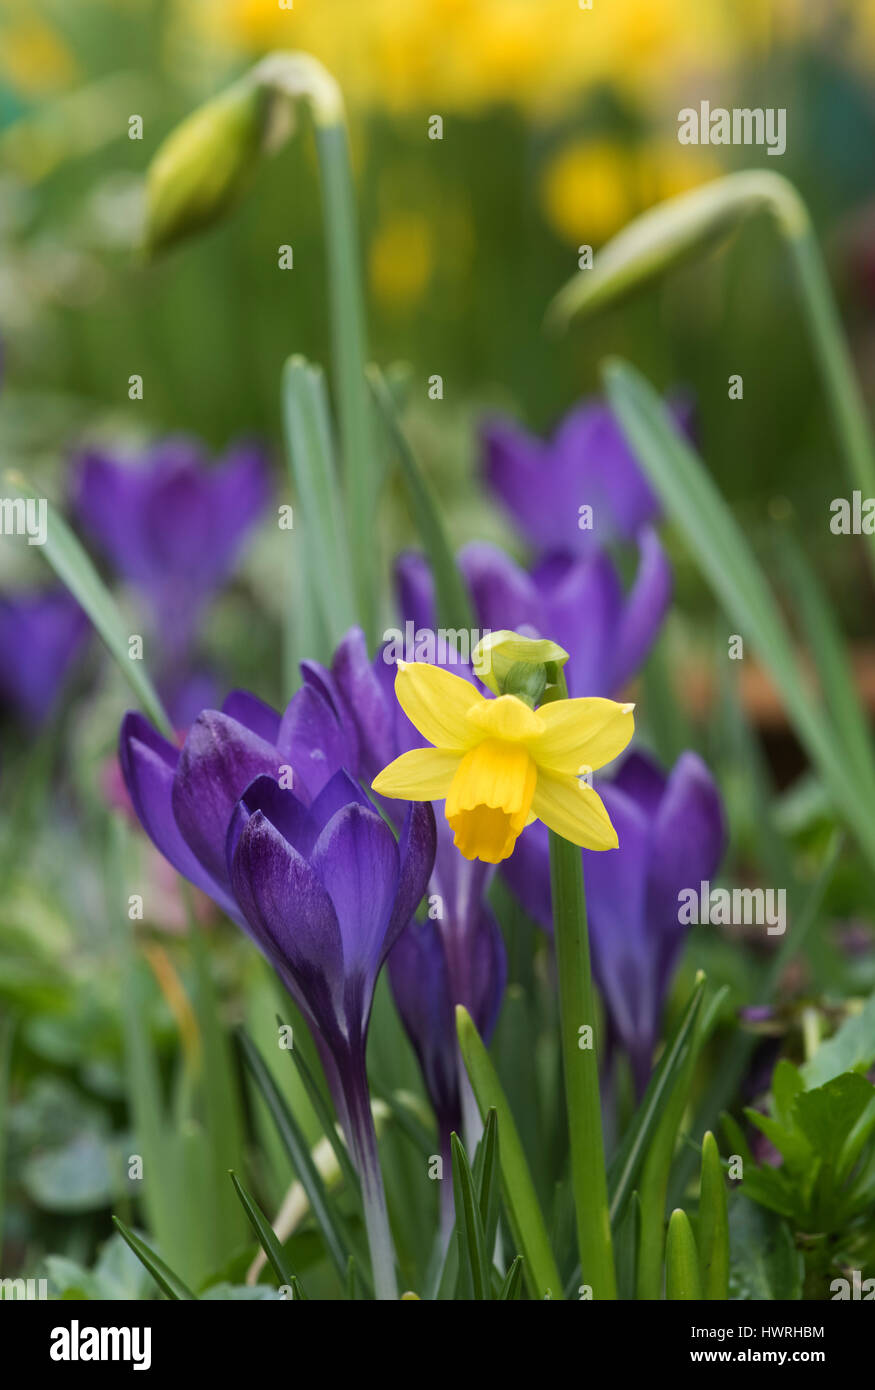 Daffodil And Crocuses Early Spring Flowers Uk Stock Photo